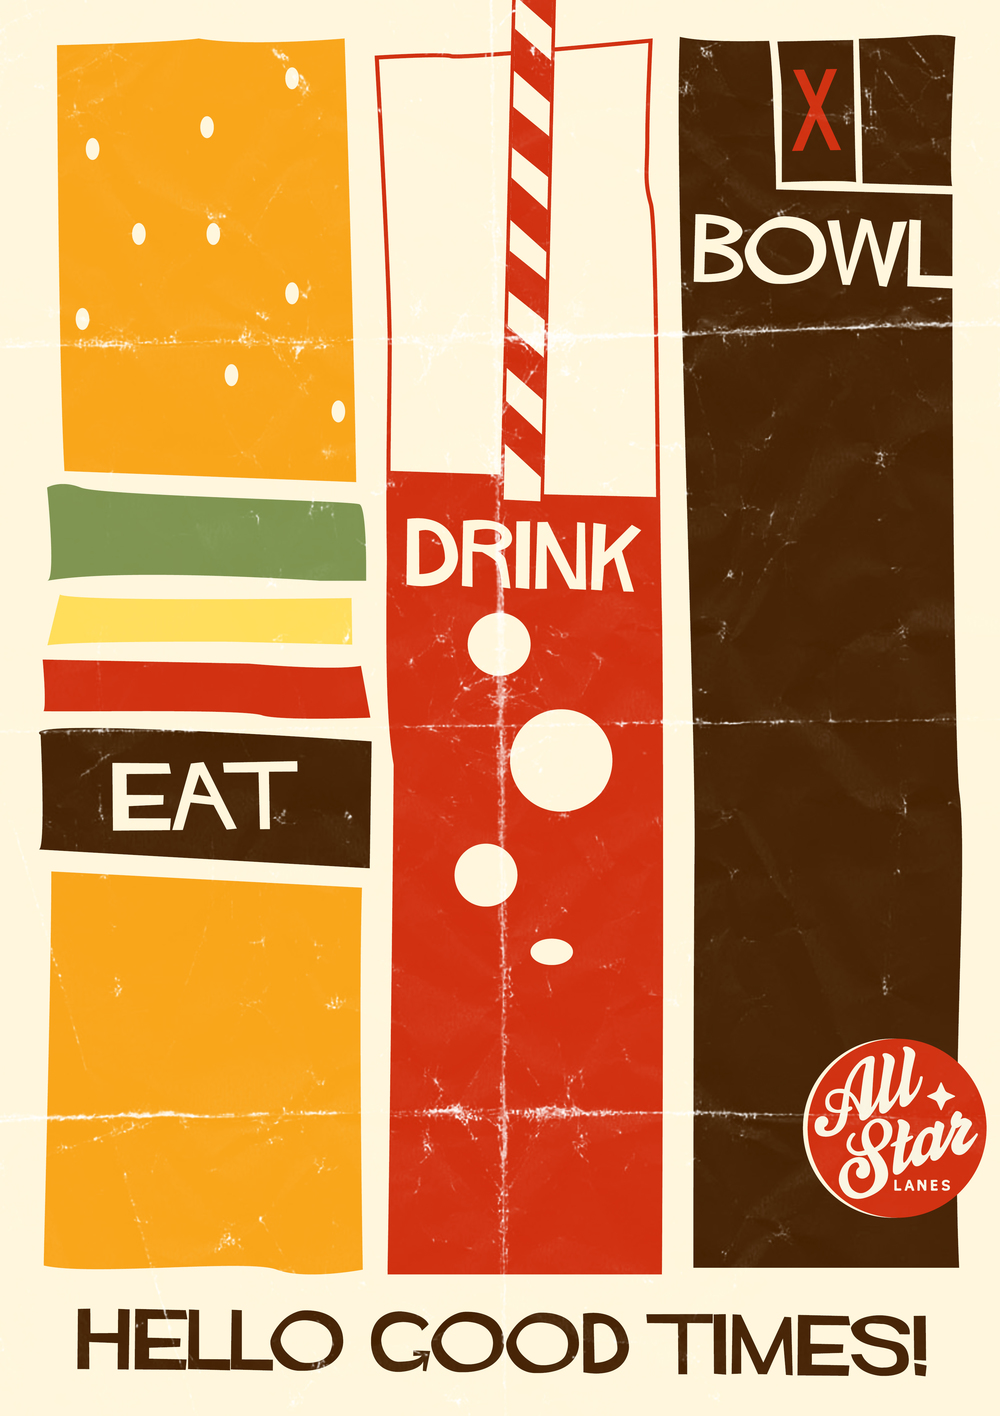 121030_Eat Drink Bowl Poster 6.jpg